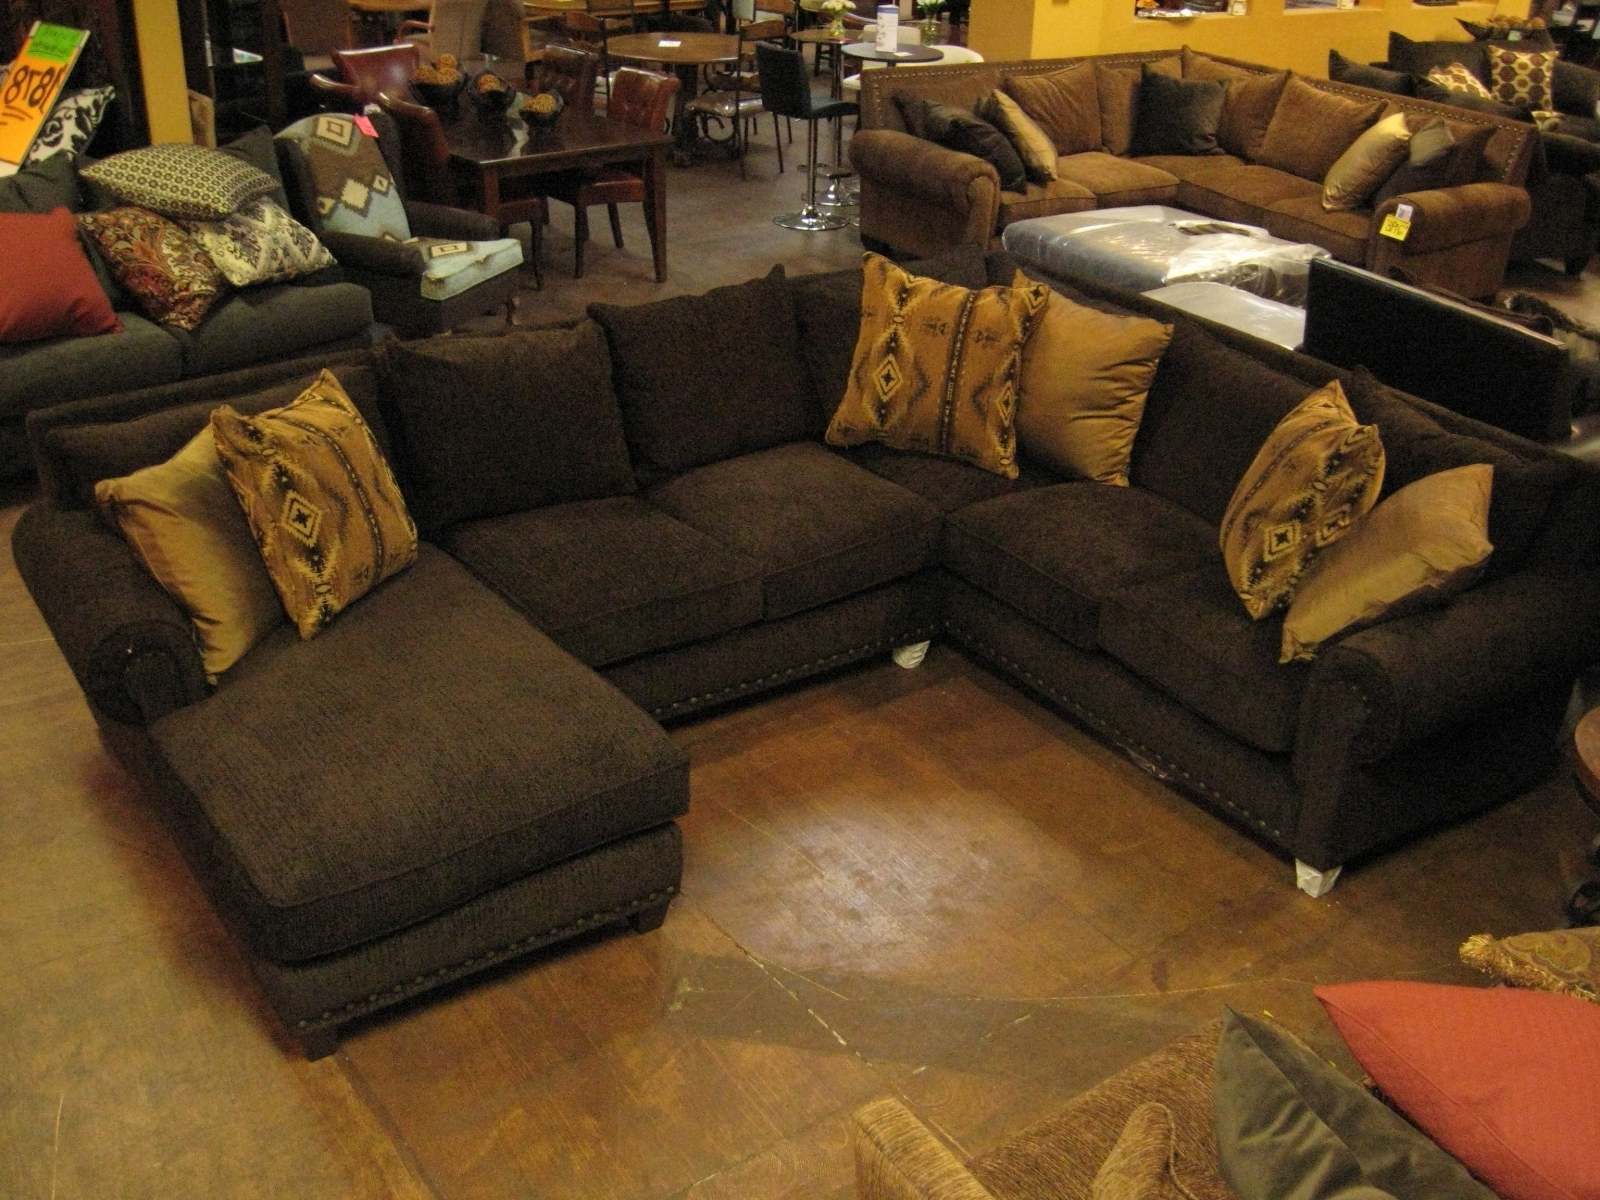 Awesome Deep Couches Design — Cabinets, Beds, Sofas And Pertaining To Current Wide Seat Sectional Sofas (View 3 of 15)